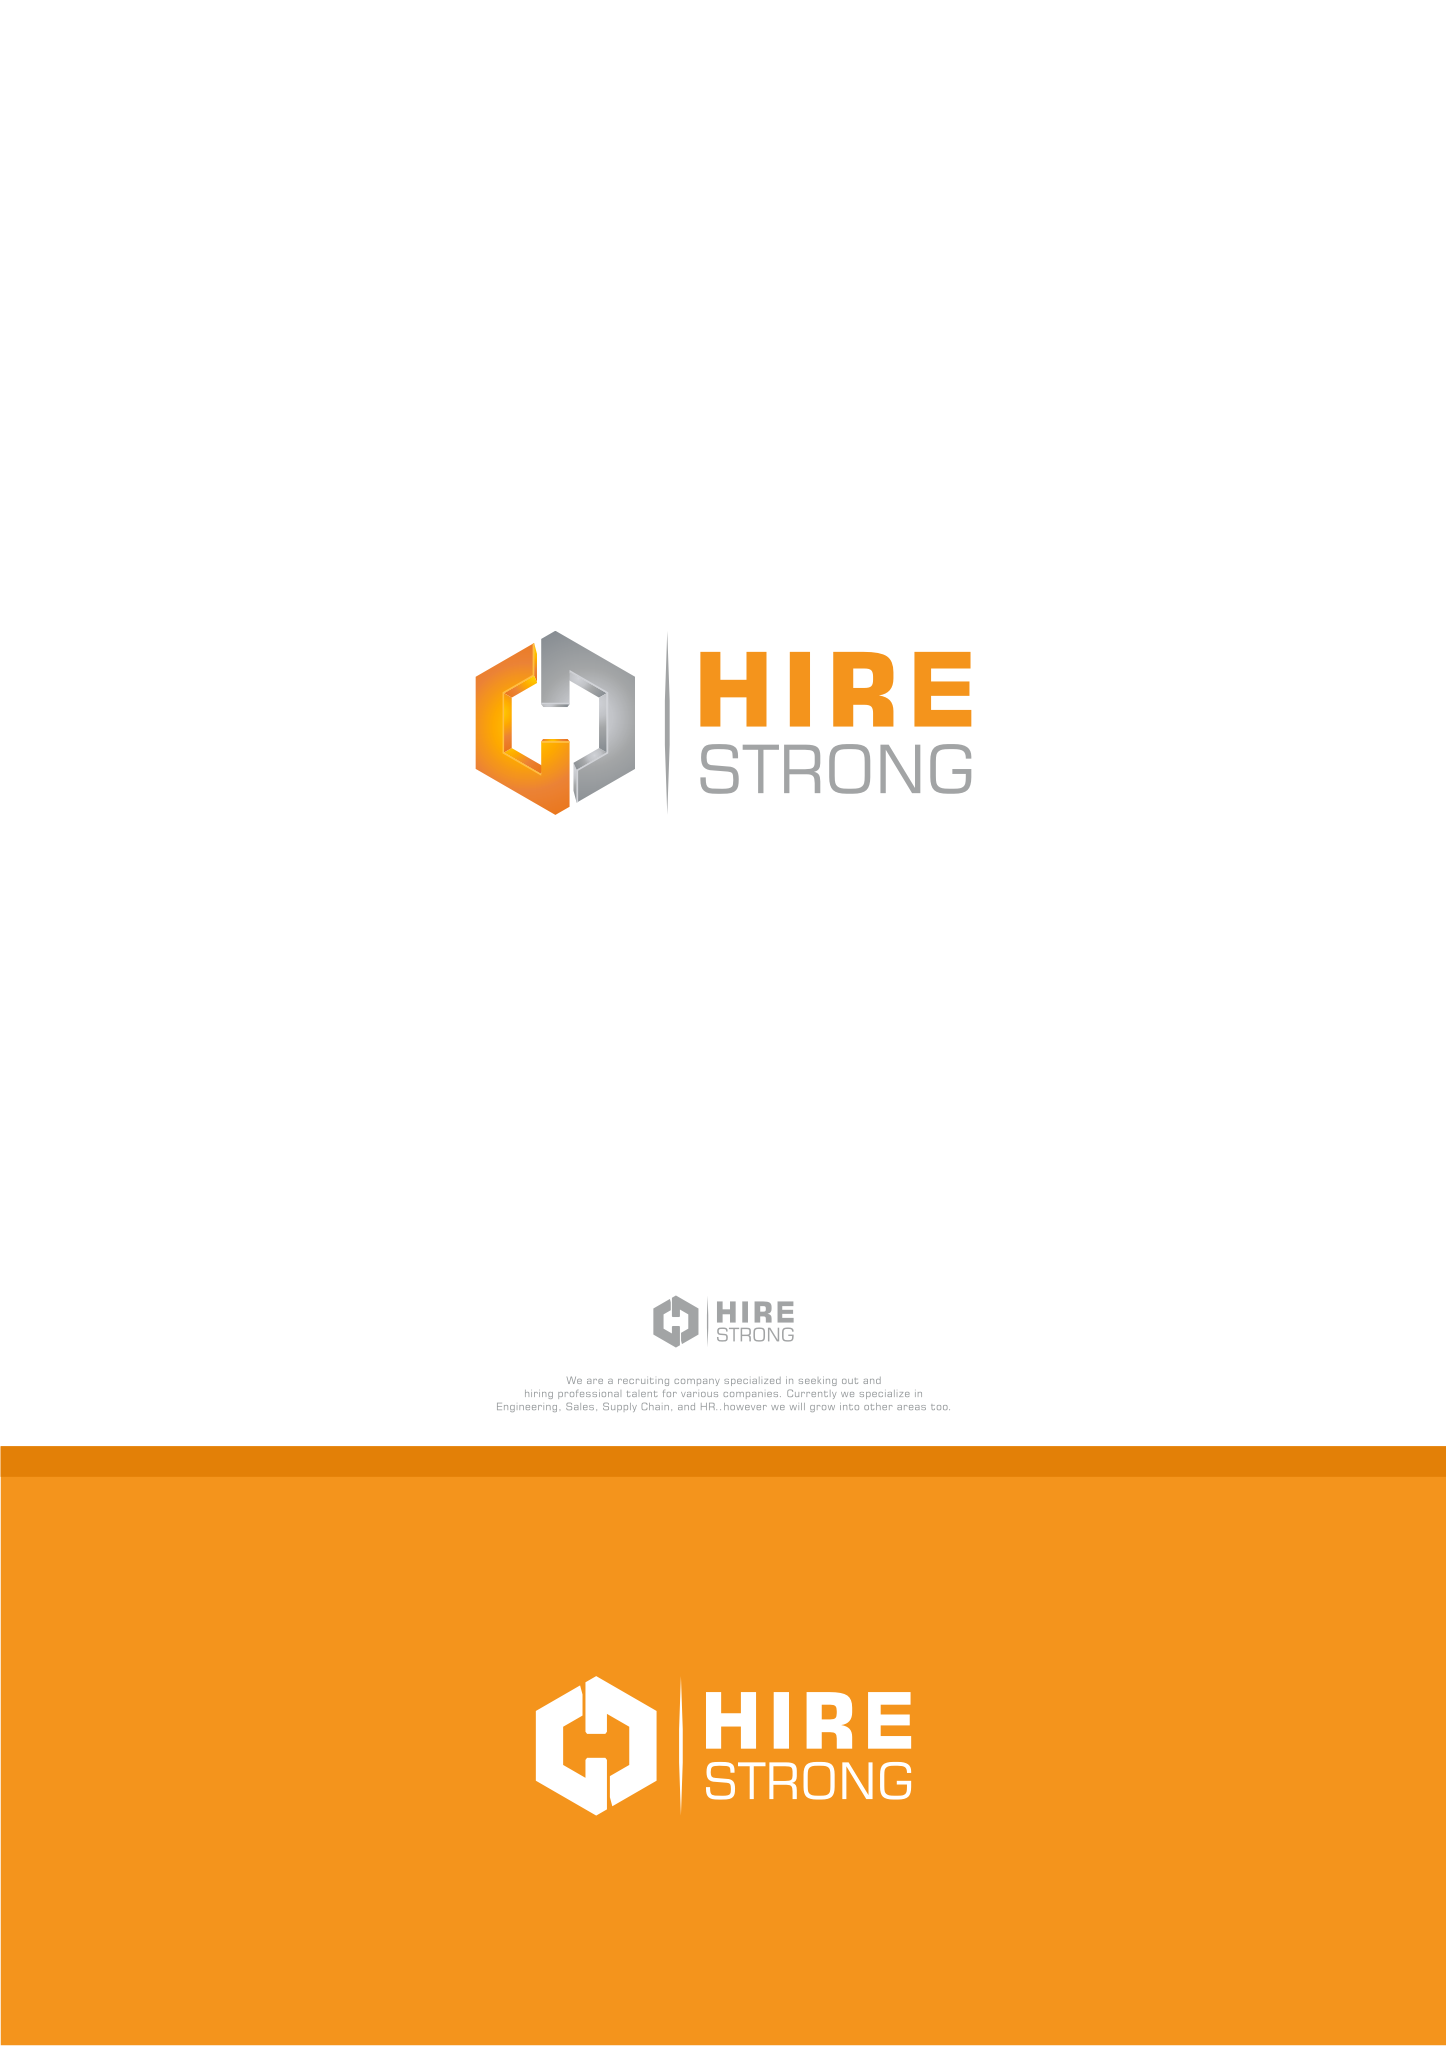 Create a subtle/sophisticated logo that shows strength and confidence (HireStrong).